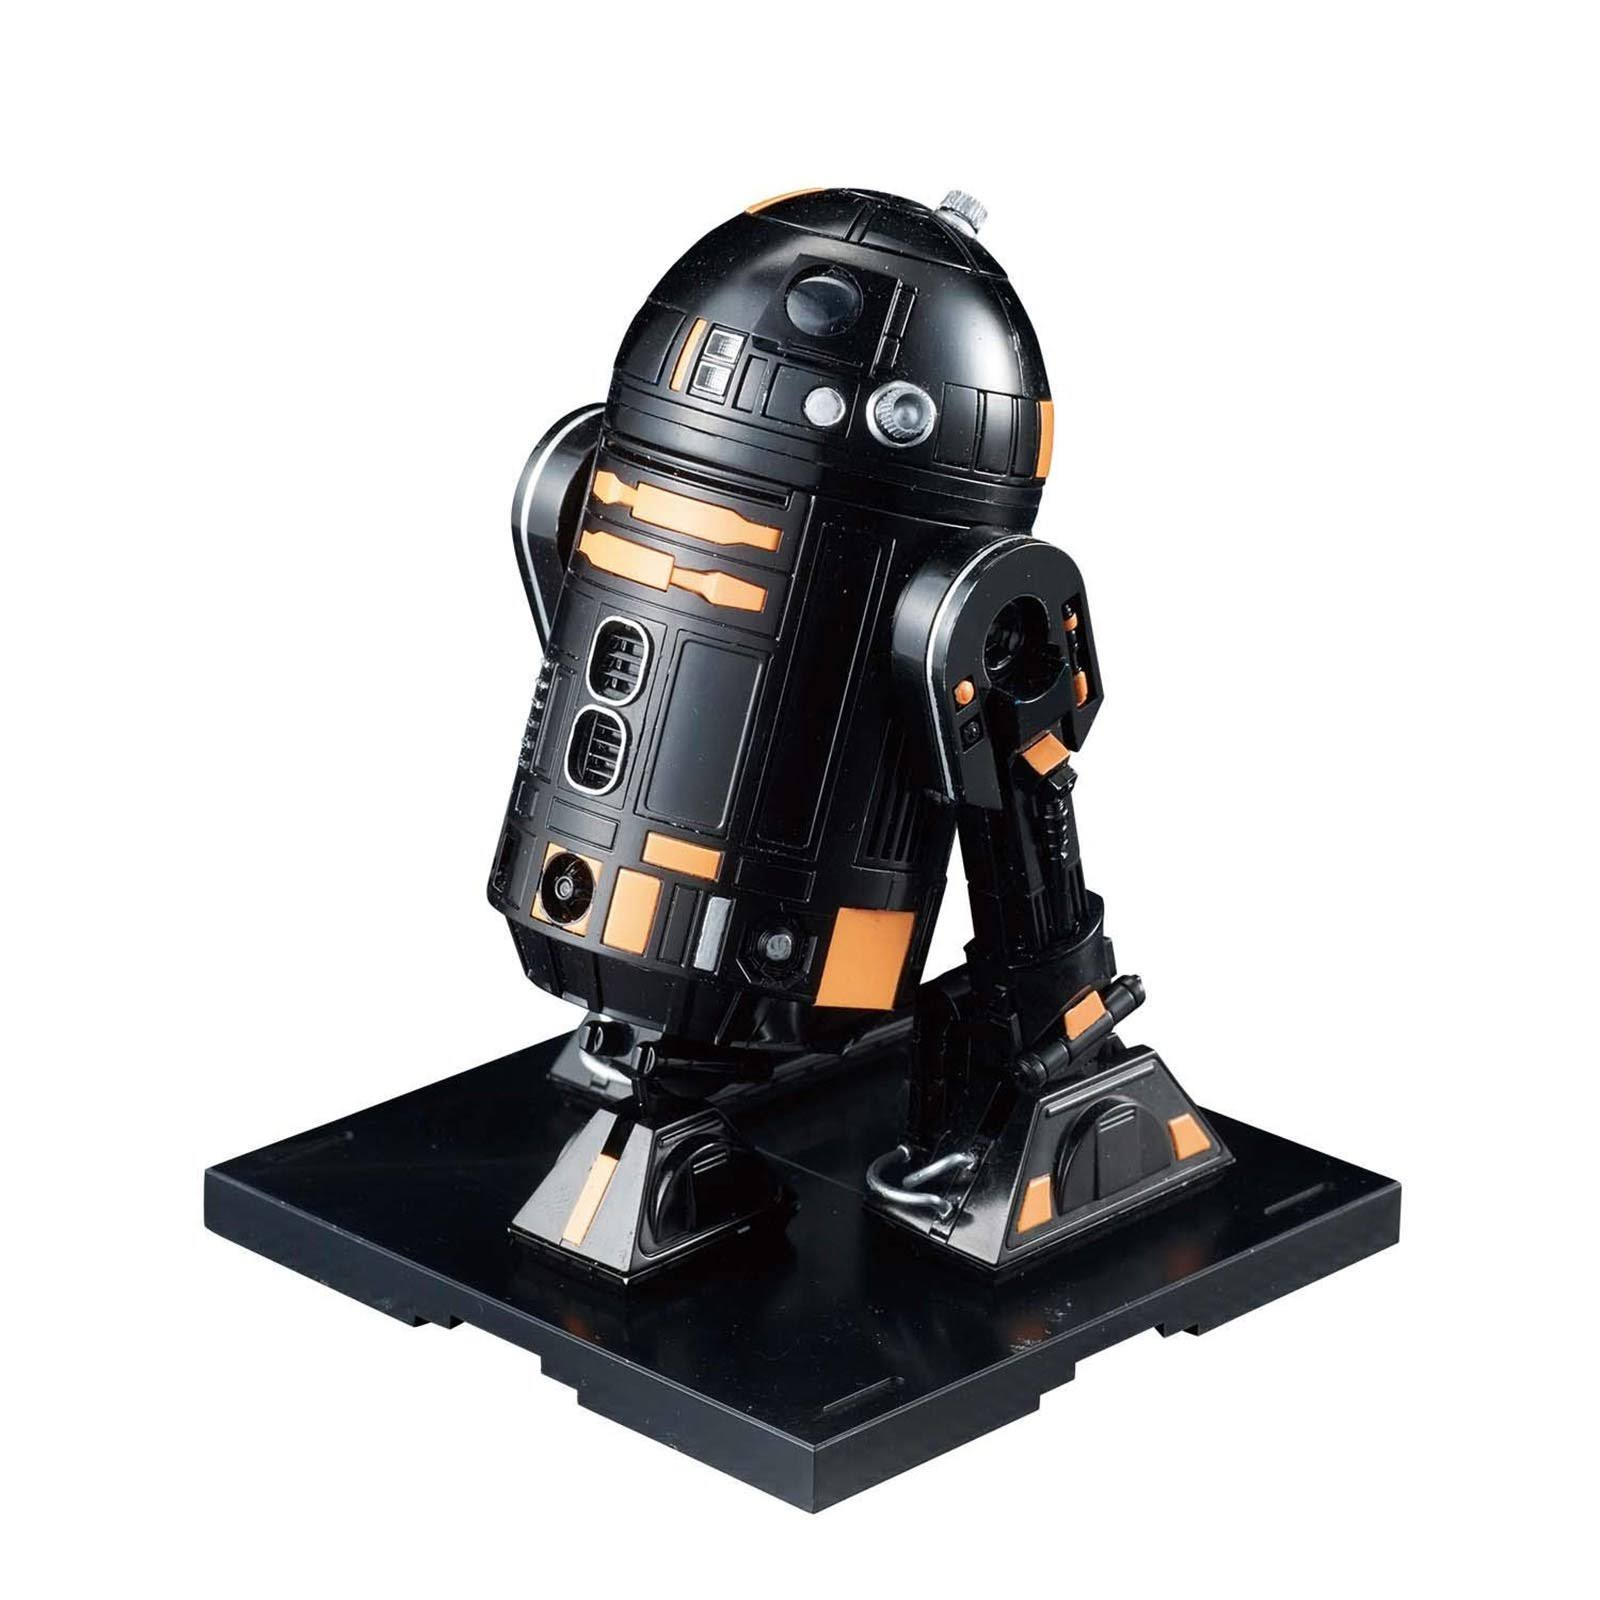 Bandai Star Wars R2-Q5 Model Kit - 1/12 Scale